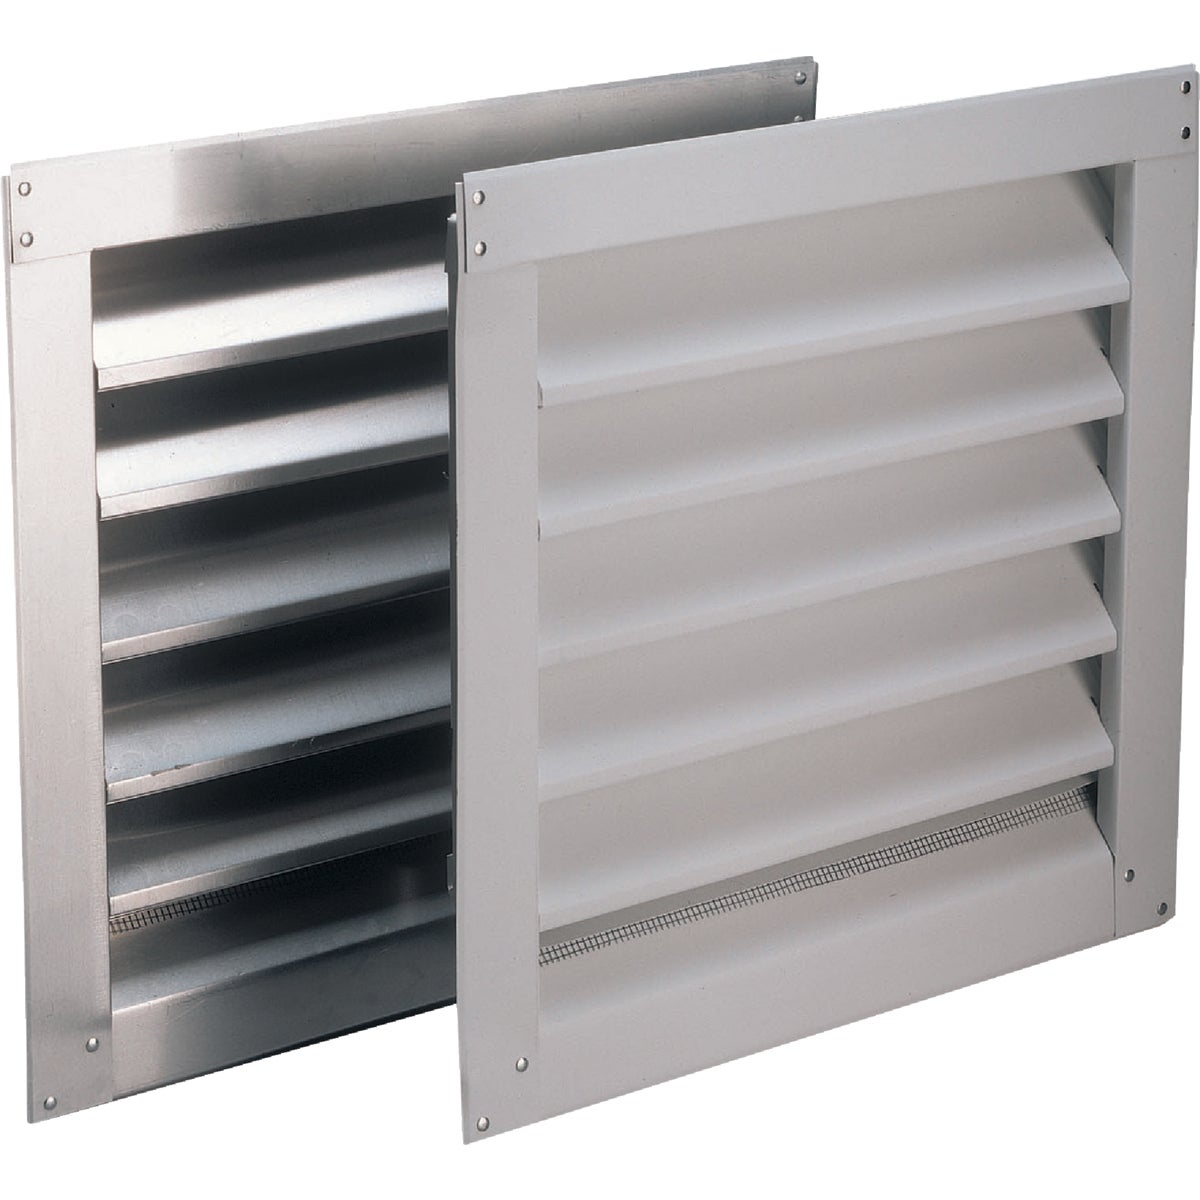 8X8 WHT ALUM WALL LOUVER - RL808900 by Air Vent Inc